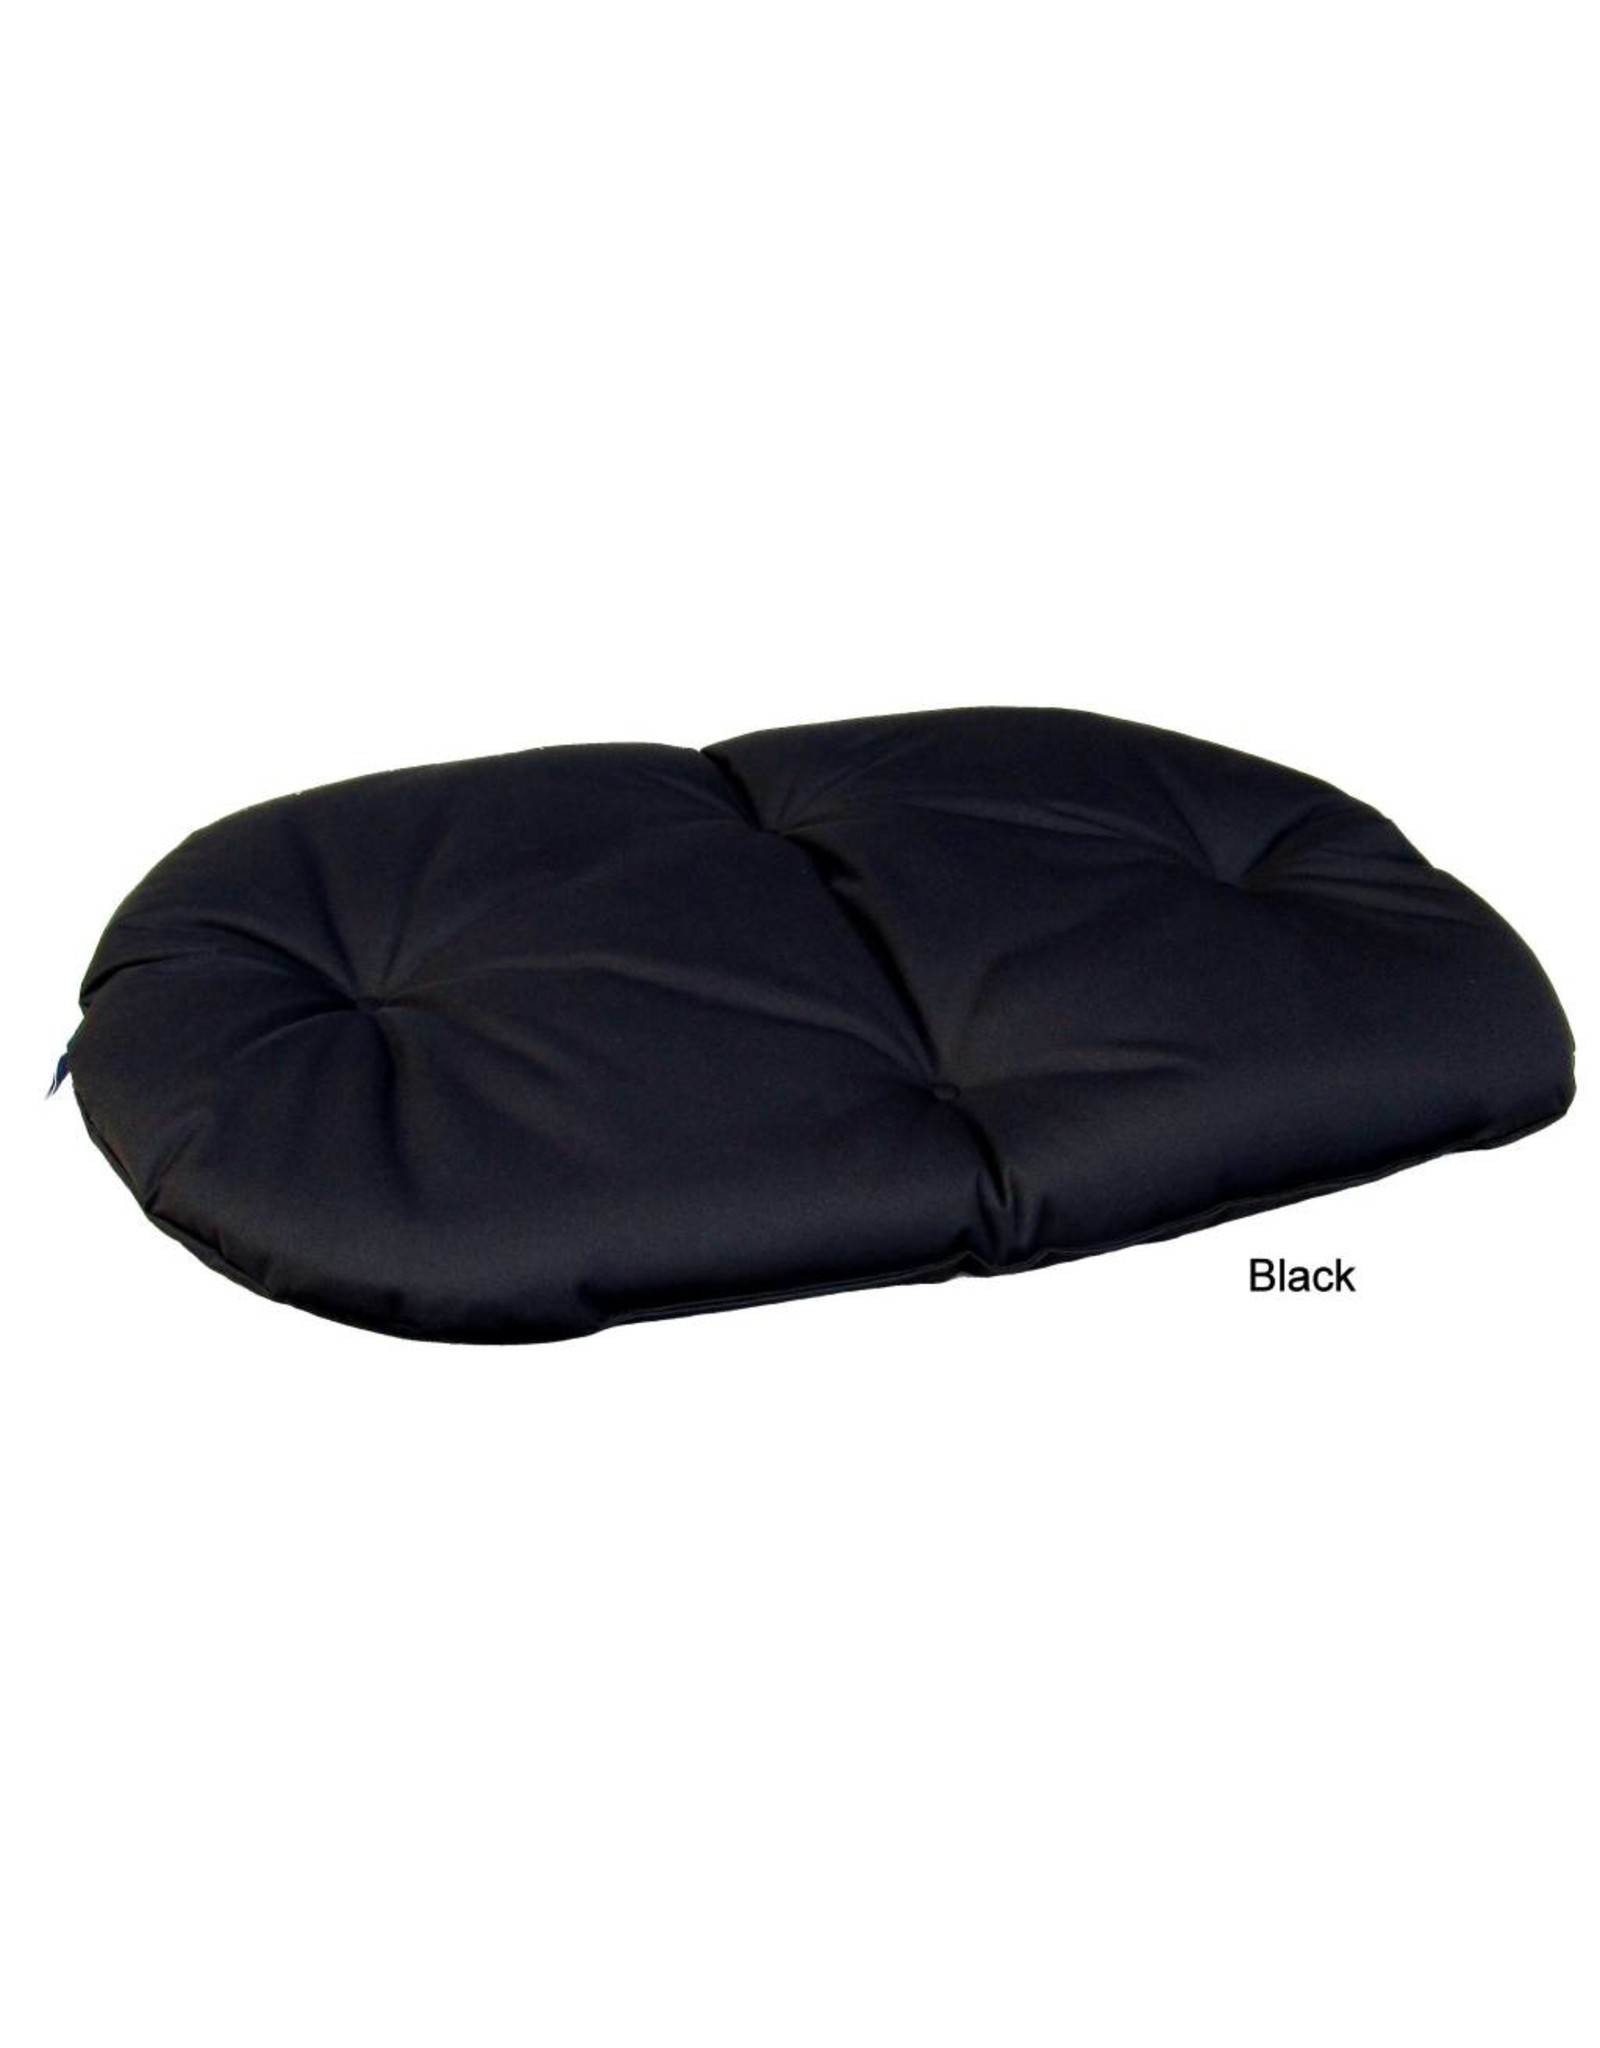 Pets & Leisure Country Dog Heavy Duty Oval Waterproof Cushion Pad in Black